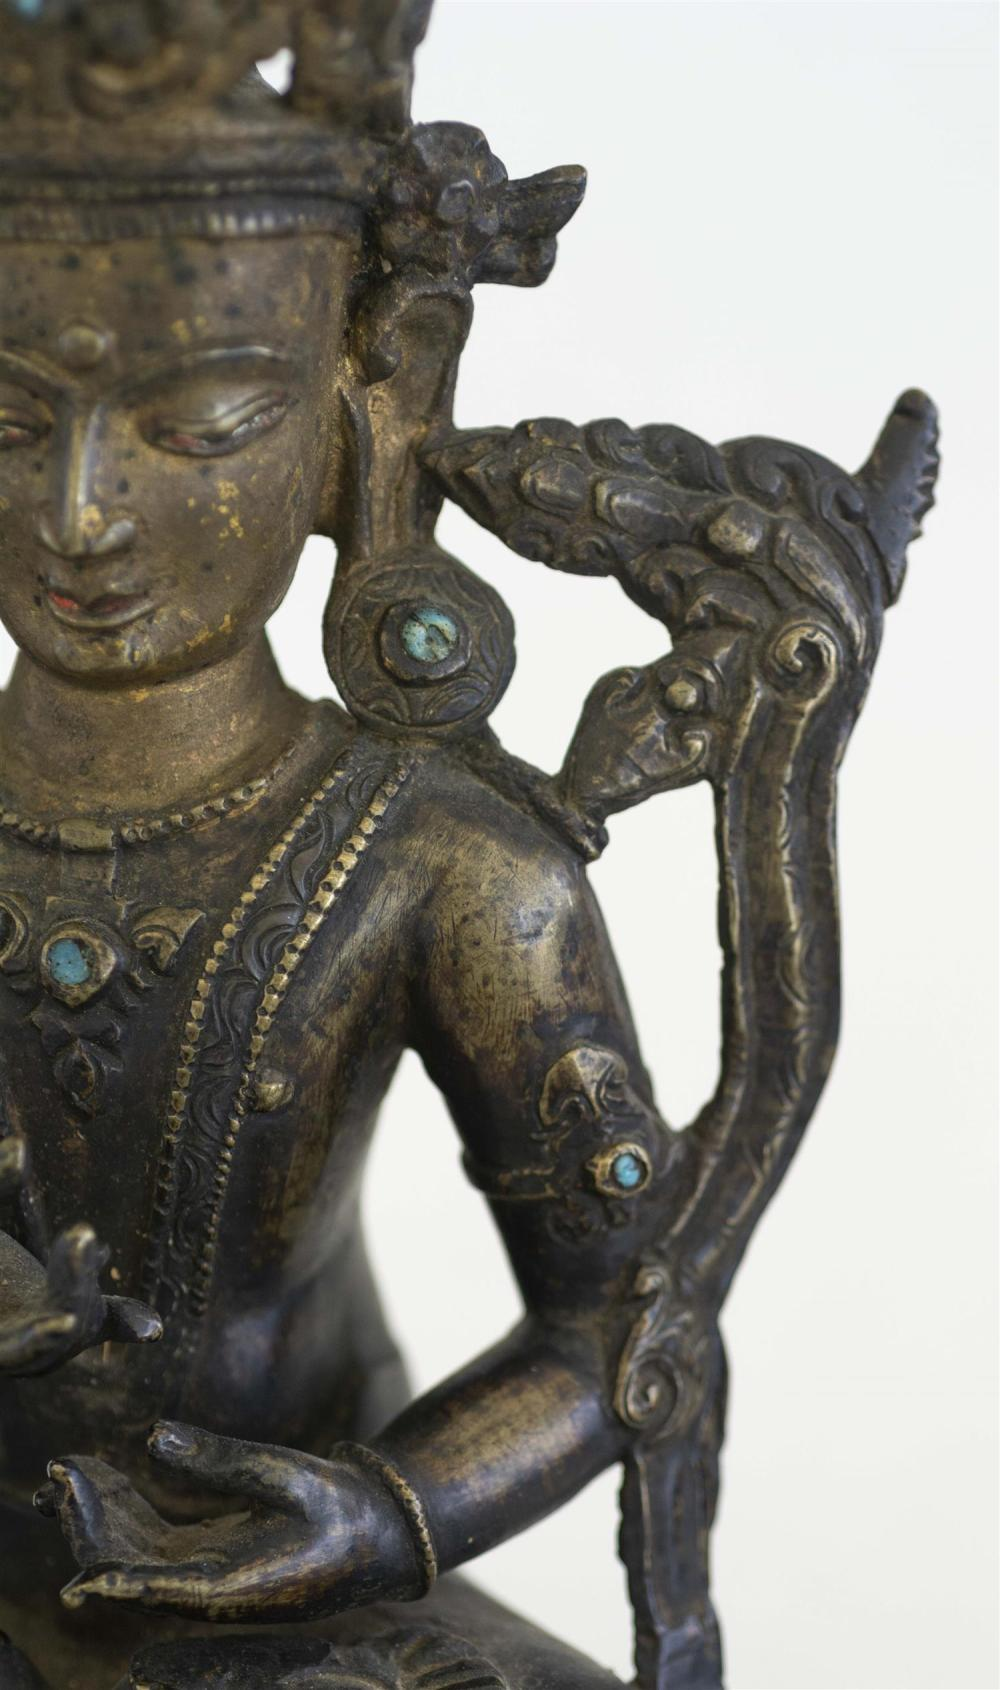 NEPALESE BRONZE FIGURE OF BUDDHA In seated position on a lotus throne. Inset turquoise details. Height 10.25